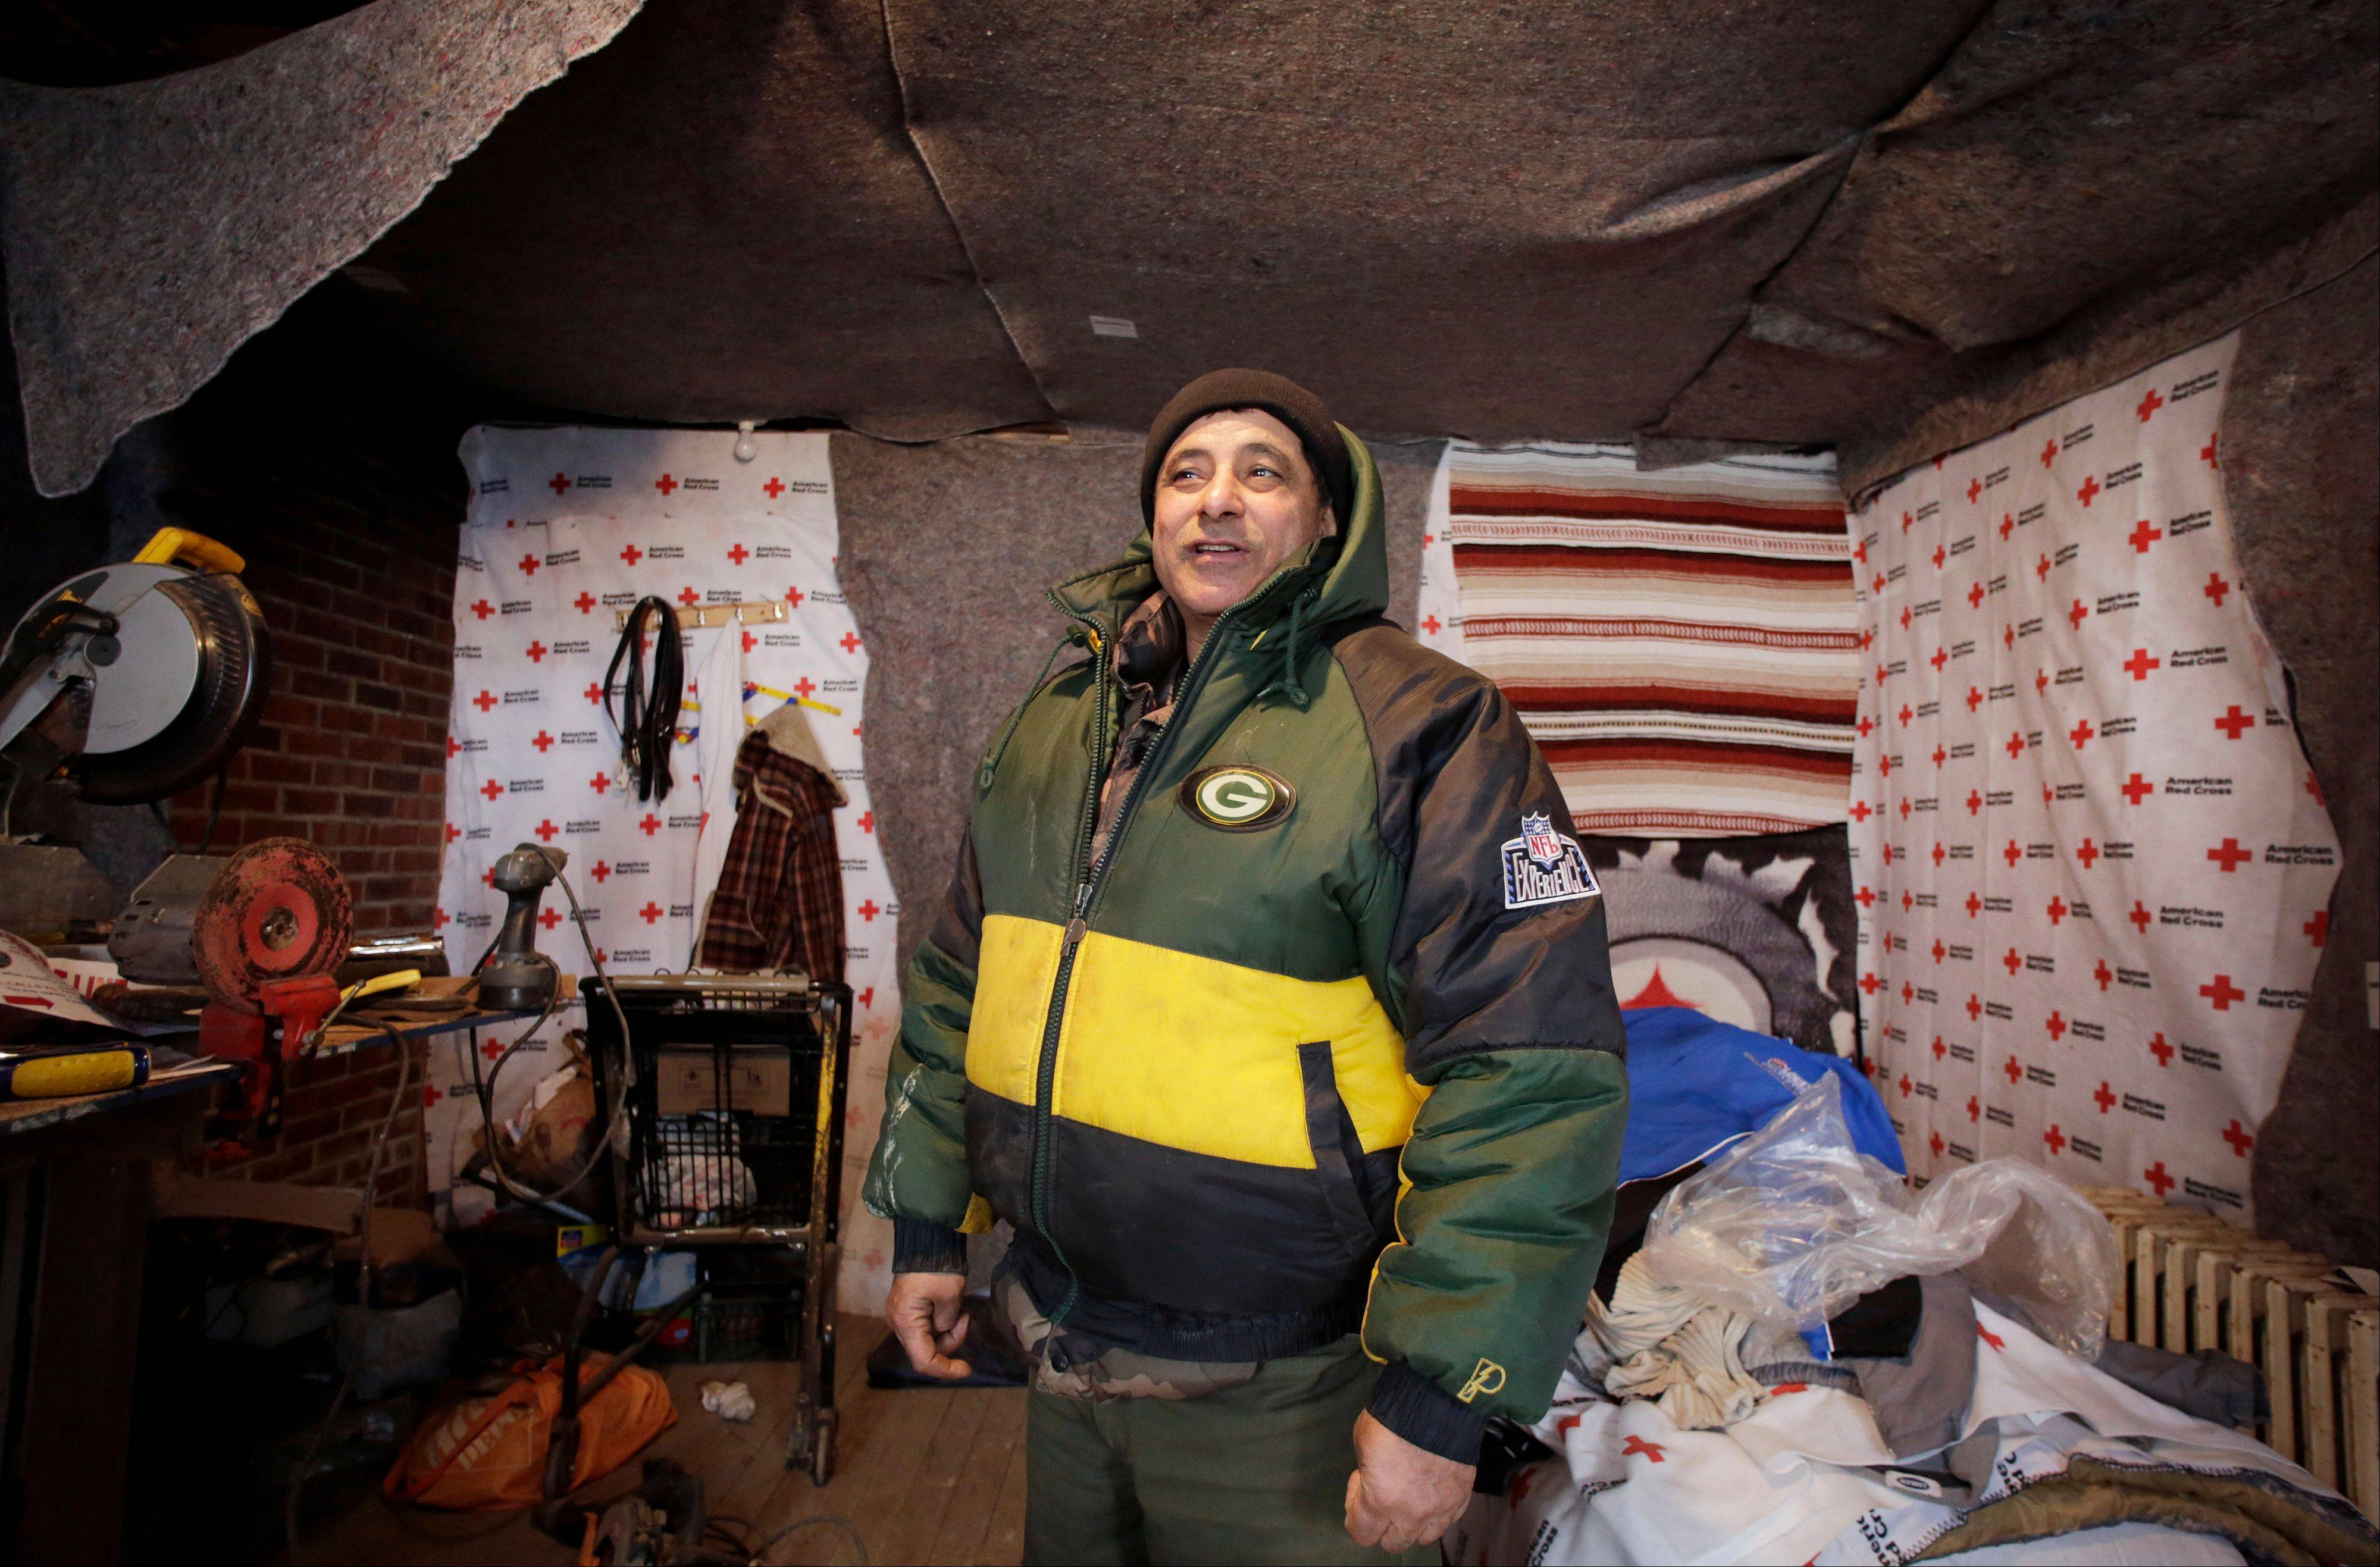 Eddie Saman shows how he insulated his home with blankets donated by the Red Cross, in the Staten Island borough of New York. The house was badly damaged by Superstorm Sandy and will have to be renovated.